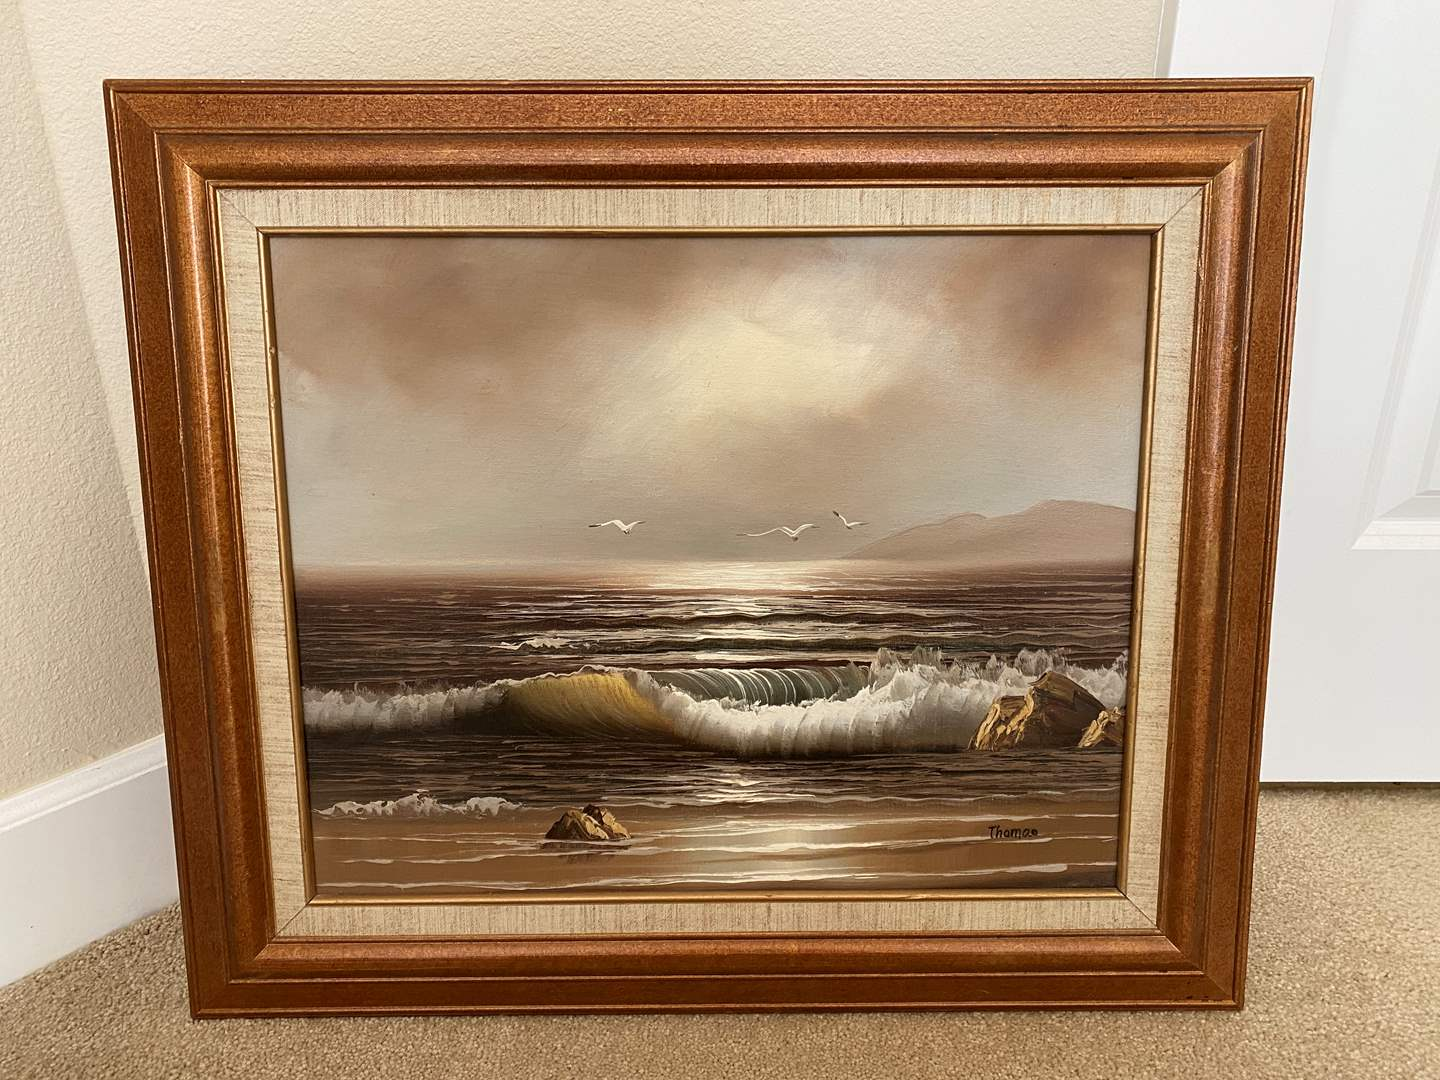 Lot # 45 - Original Signed Oil on Canvas Board by Thomas (main image)